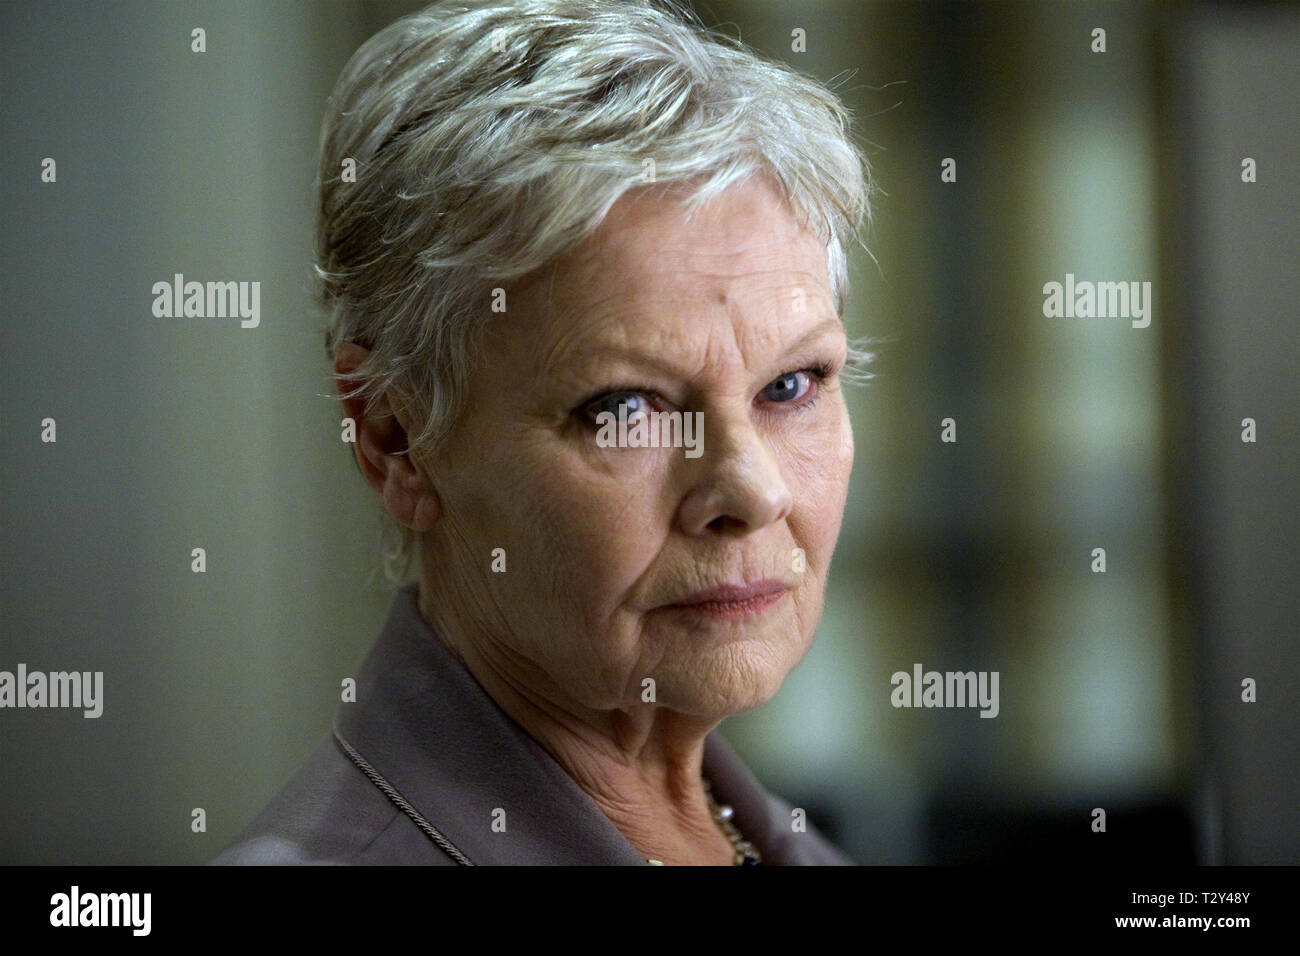 JUDI DENCH,  QUANTUM OF SOLACE, 2008 - Stock Image